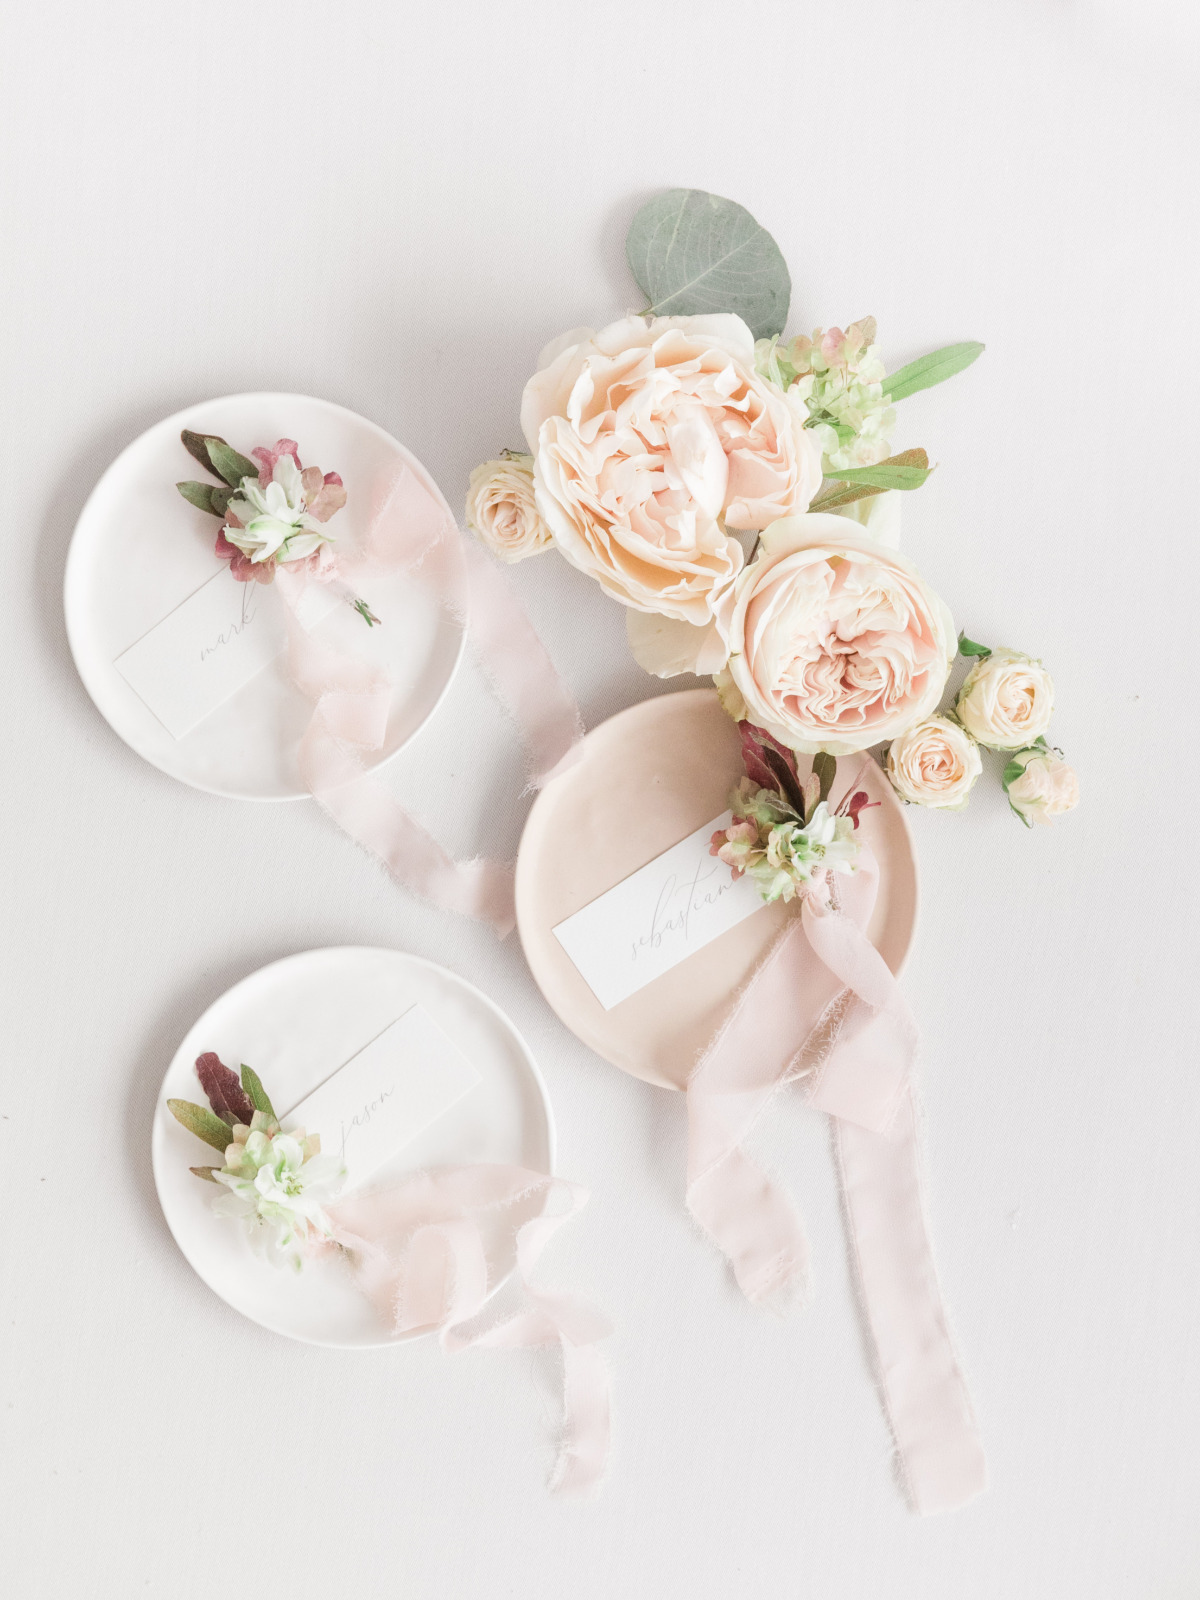 How To Have An Elegant Greek Wedding in Pink and Green